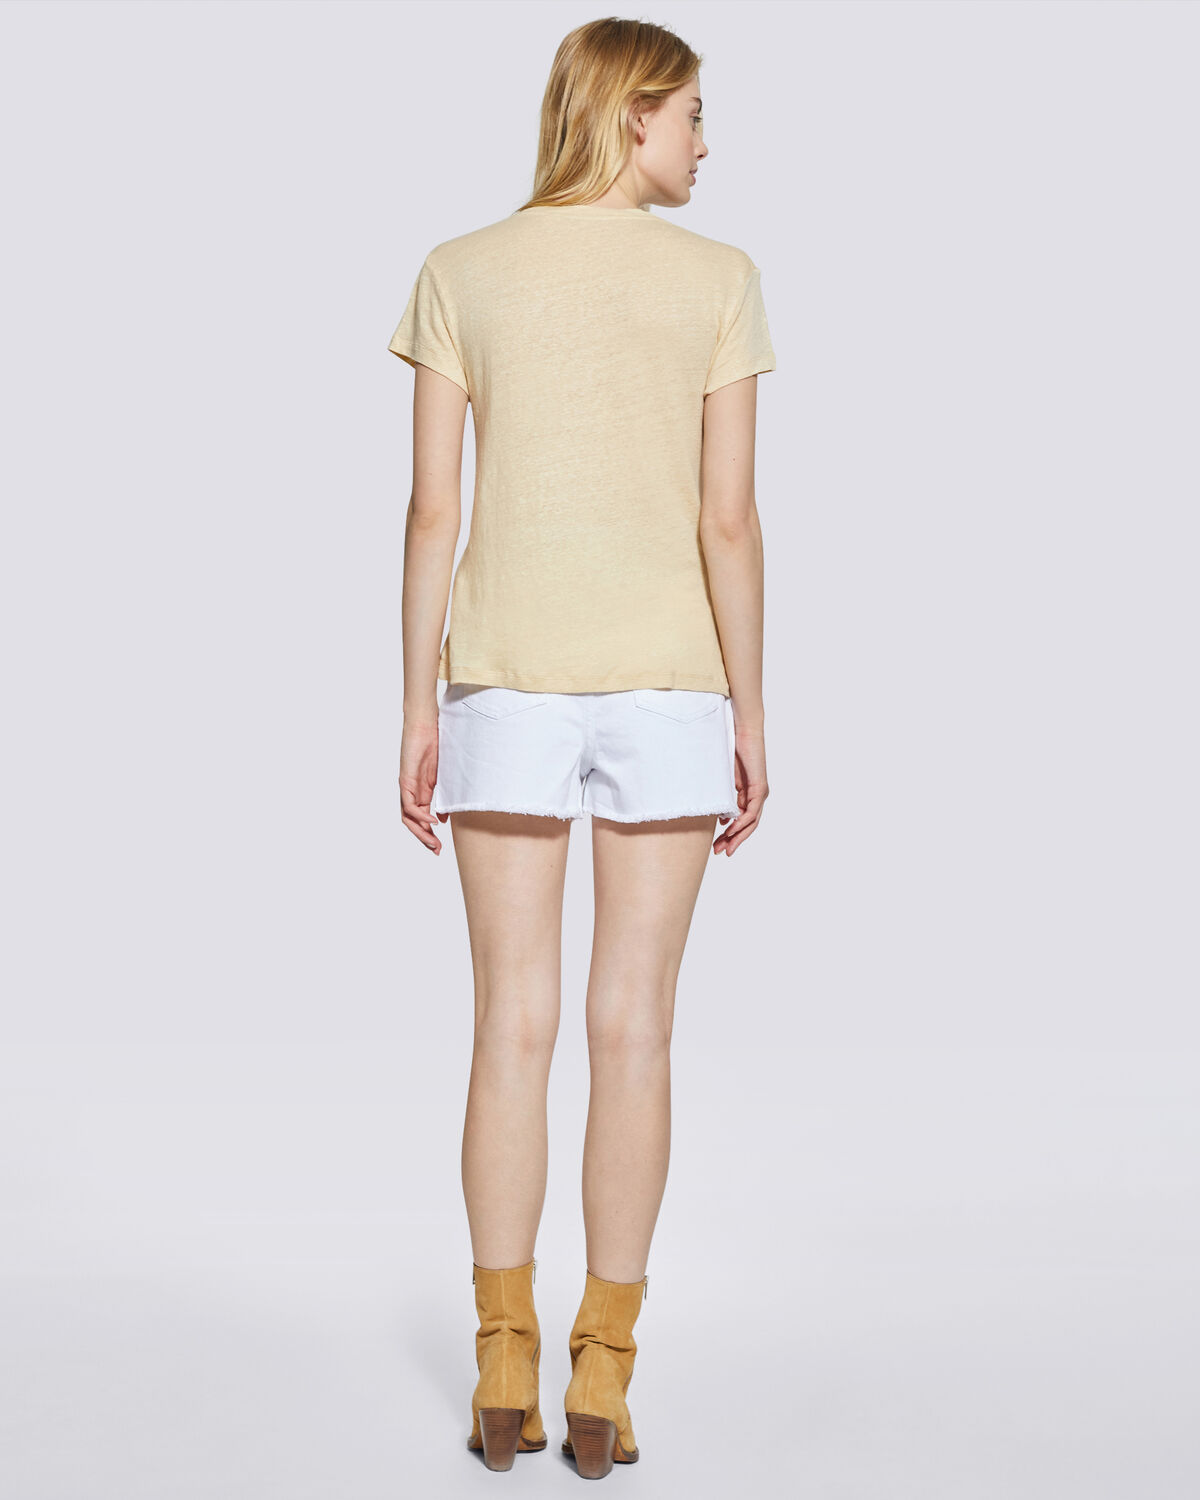 IRO - THIRD SHORT SLEEVE CREW NECK T SHIRT LIGHT YELLOW